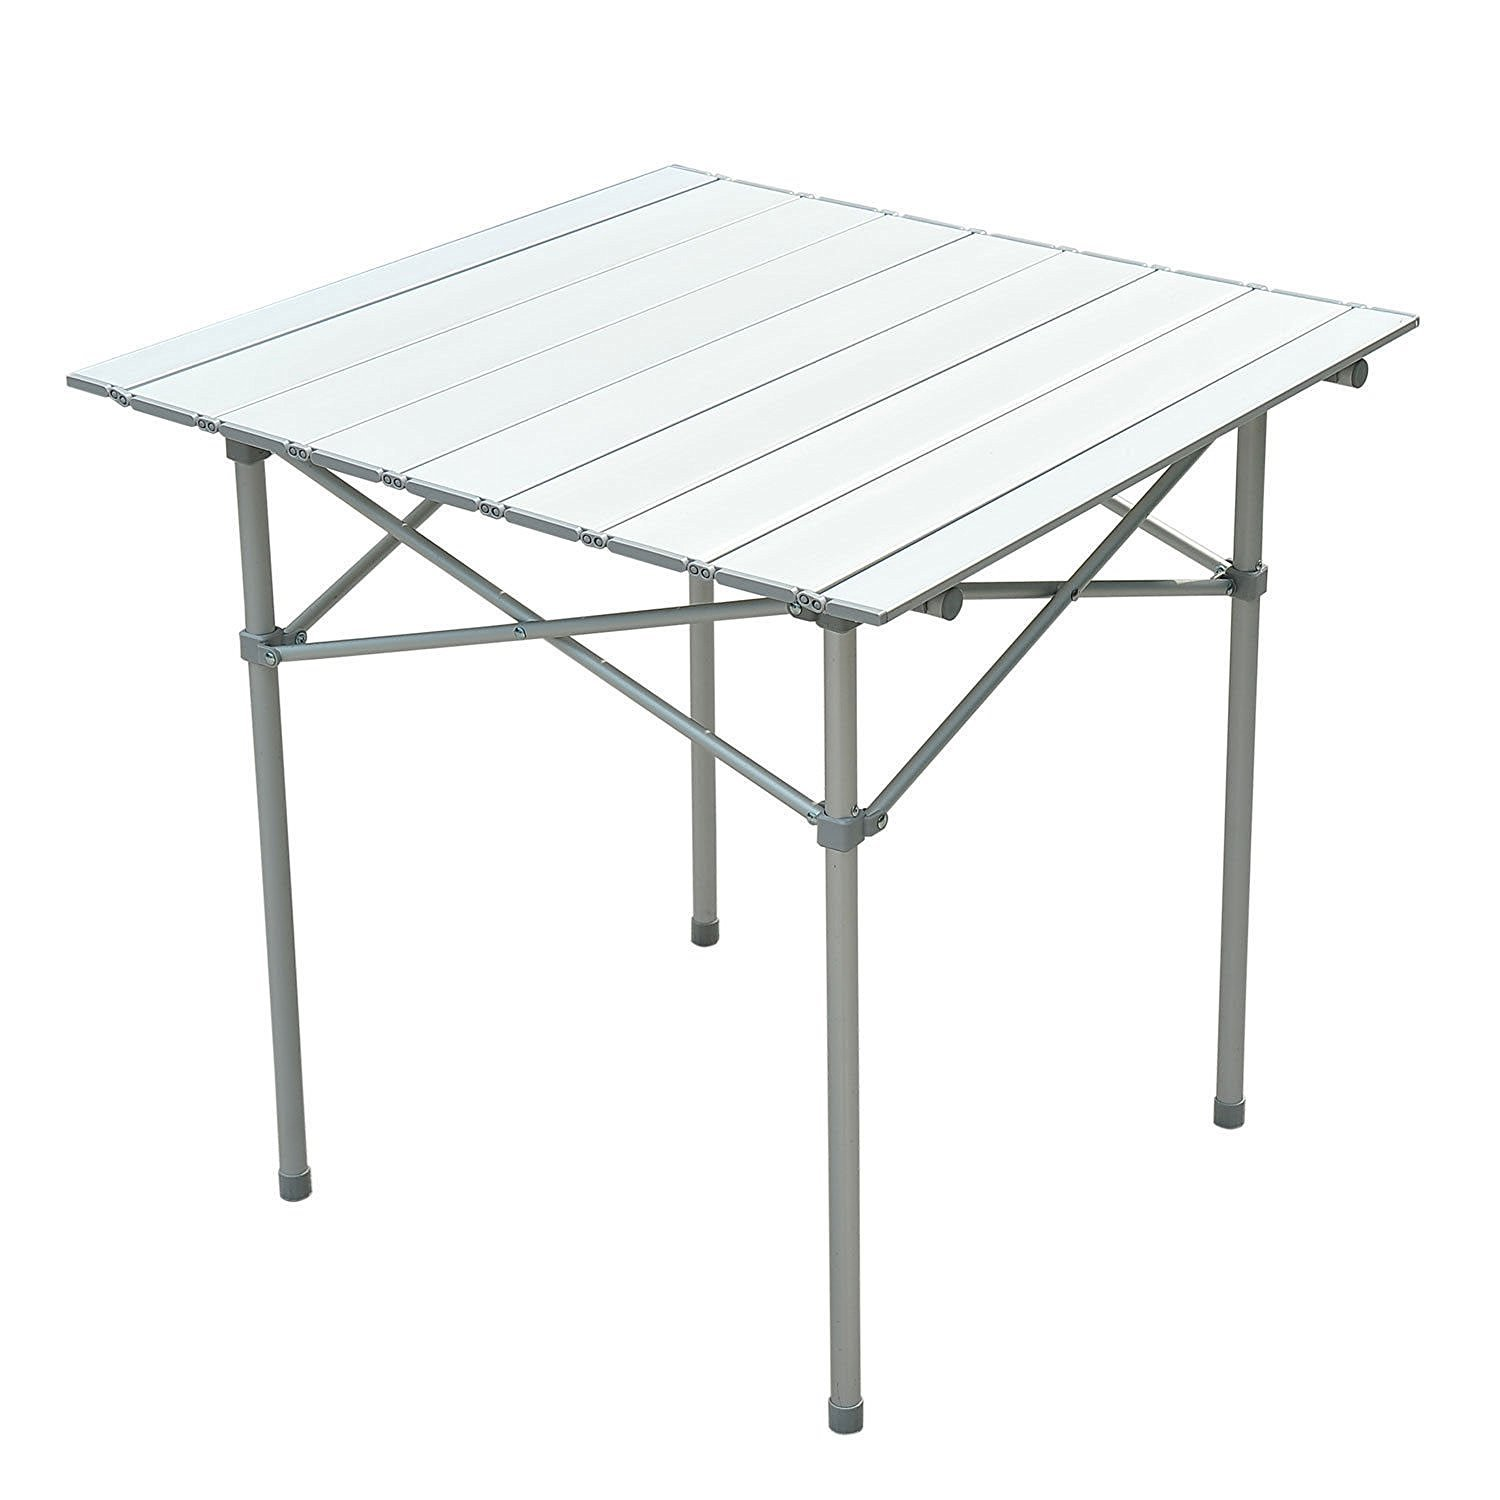 28''X28'' Roll Up Portable Folding Camping Square Aluminum Picnic Table Desk W/Bag Seating Capacity 4 Easy To Clean Top Brand New by Generic